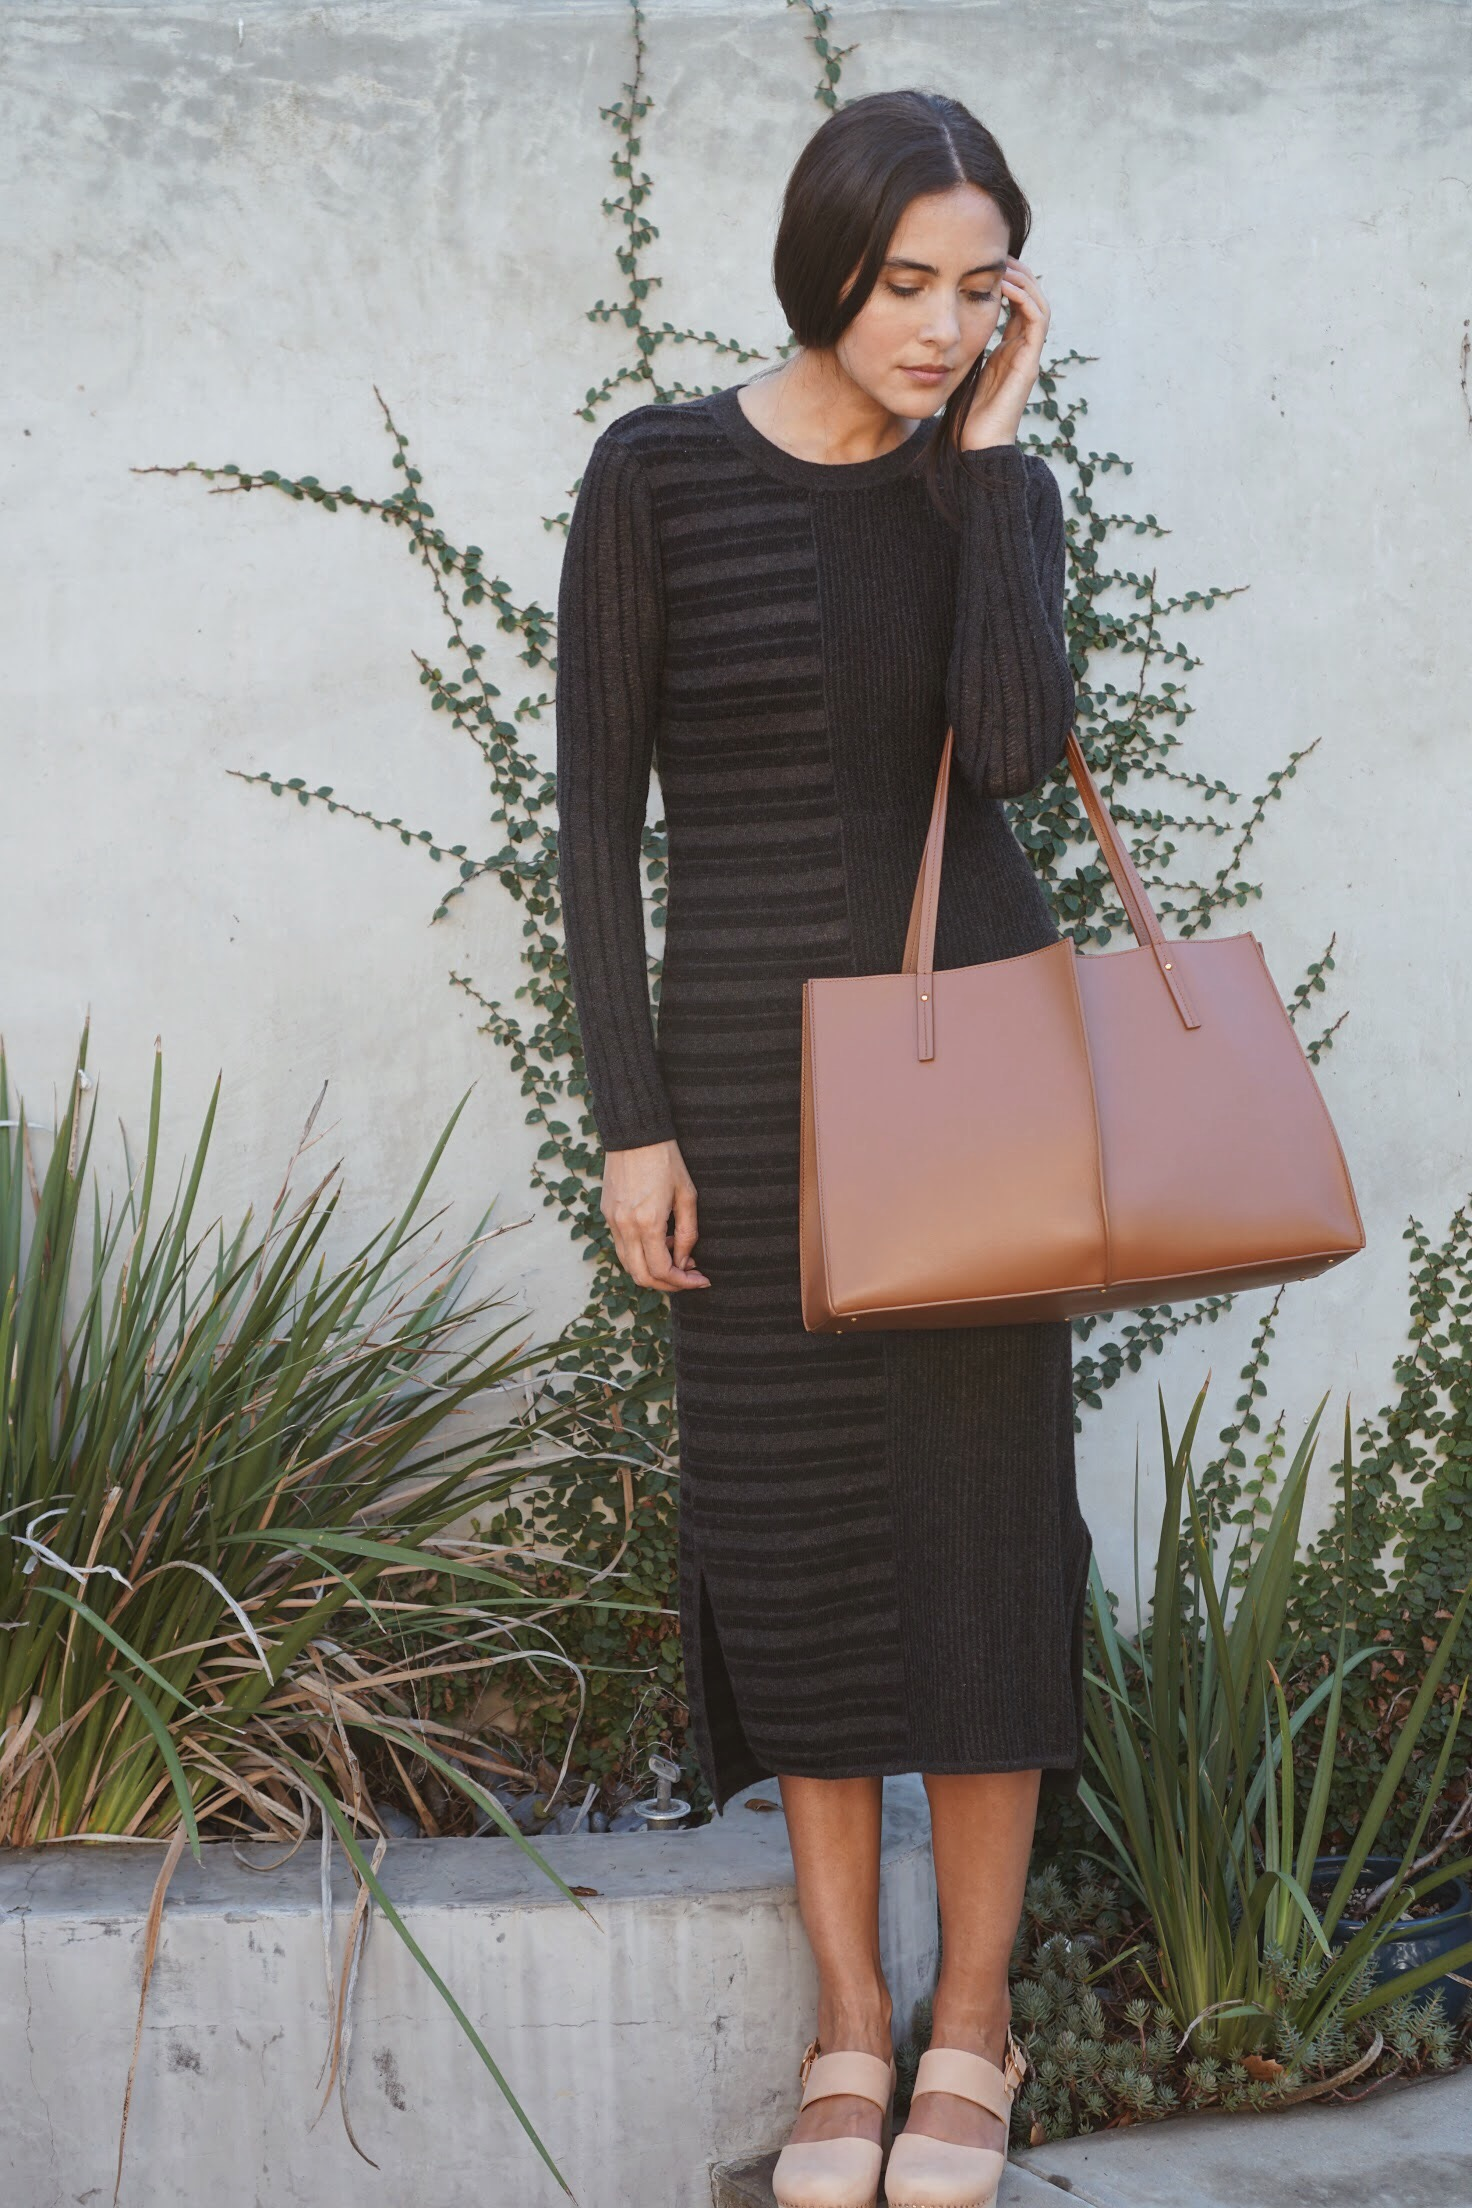 Maiyet Knit Stripe Sheath Dress in Blk/Ch +  Maiyet  Sia East/West in Cognac +   Zuzii   Closed Toe Clogs in Natural.